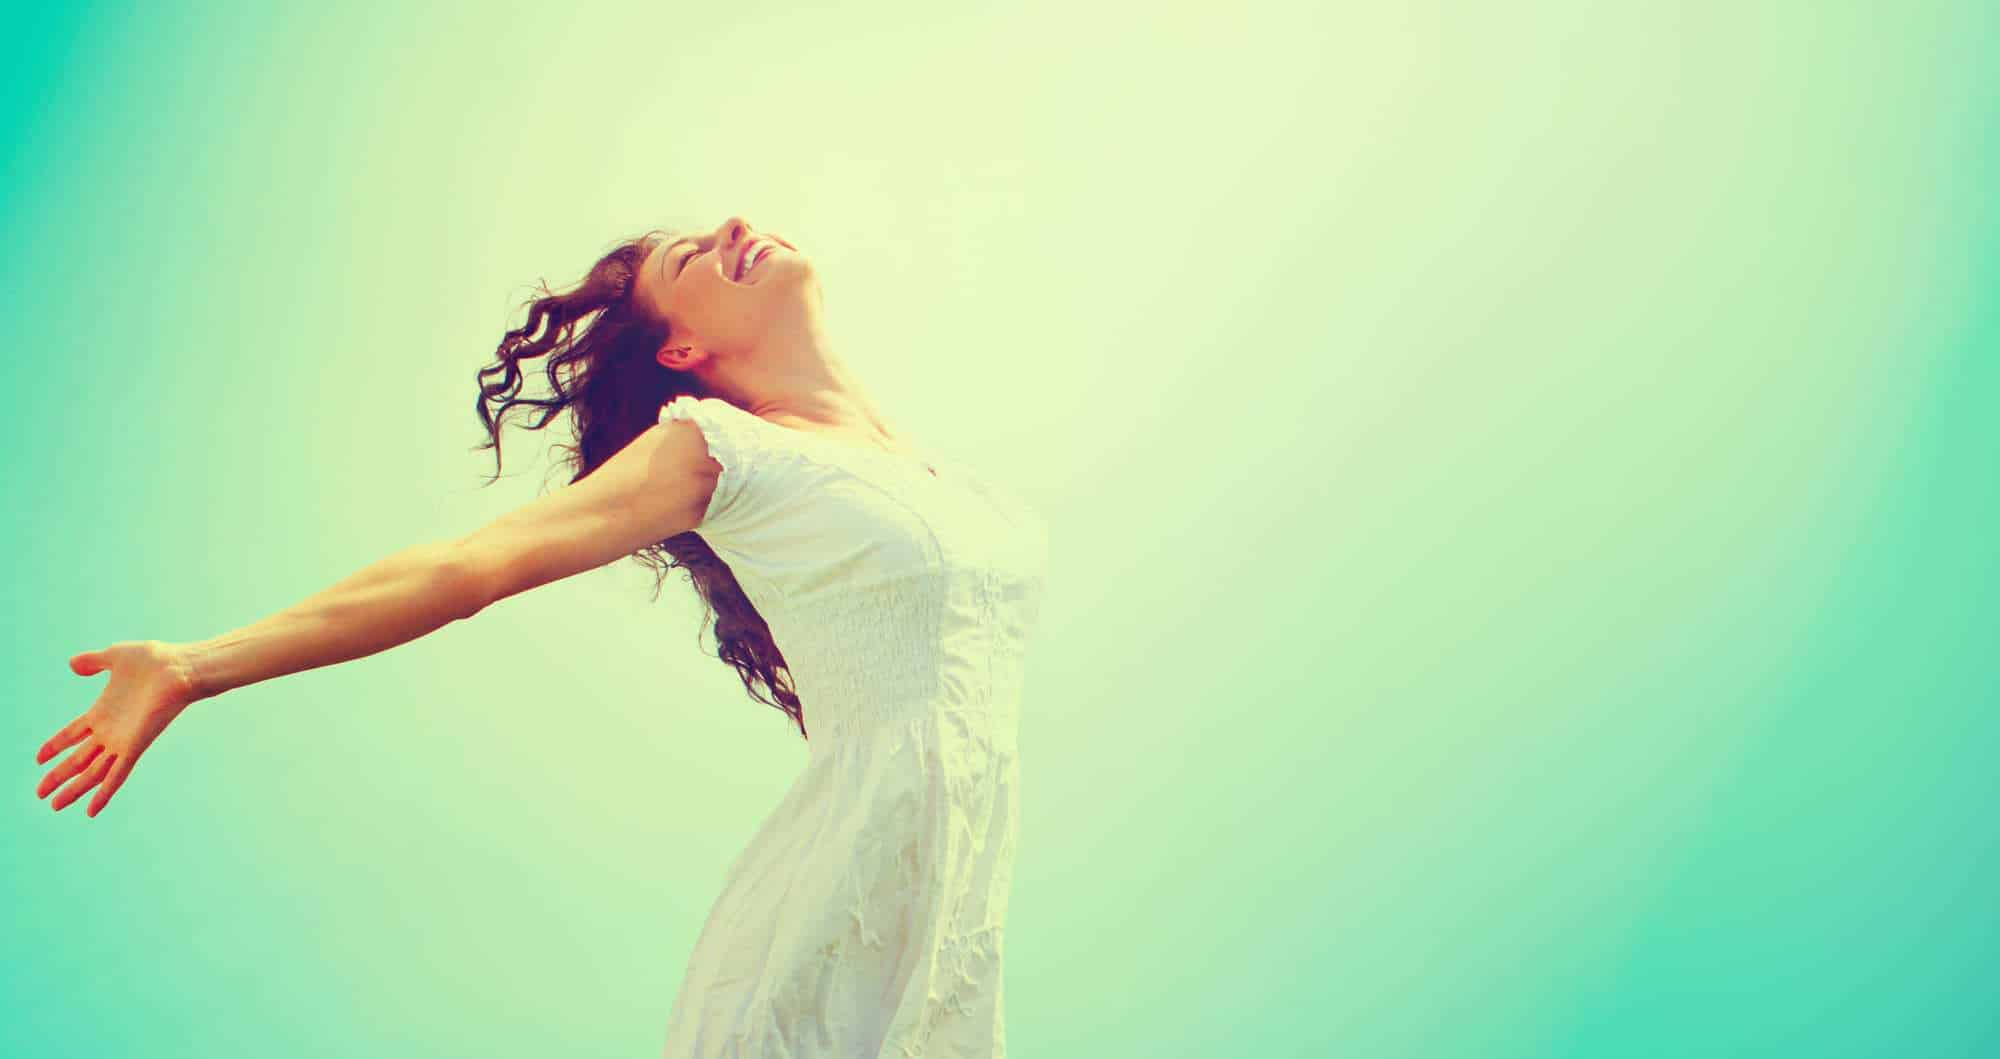 Are Your Goals Limiting Your Well-Being?